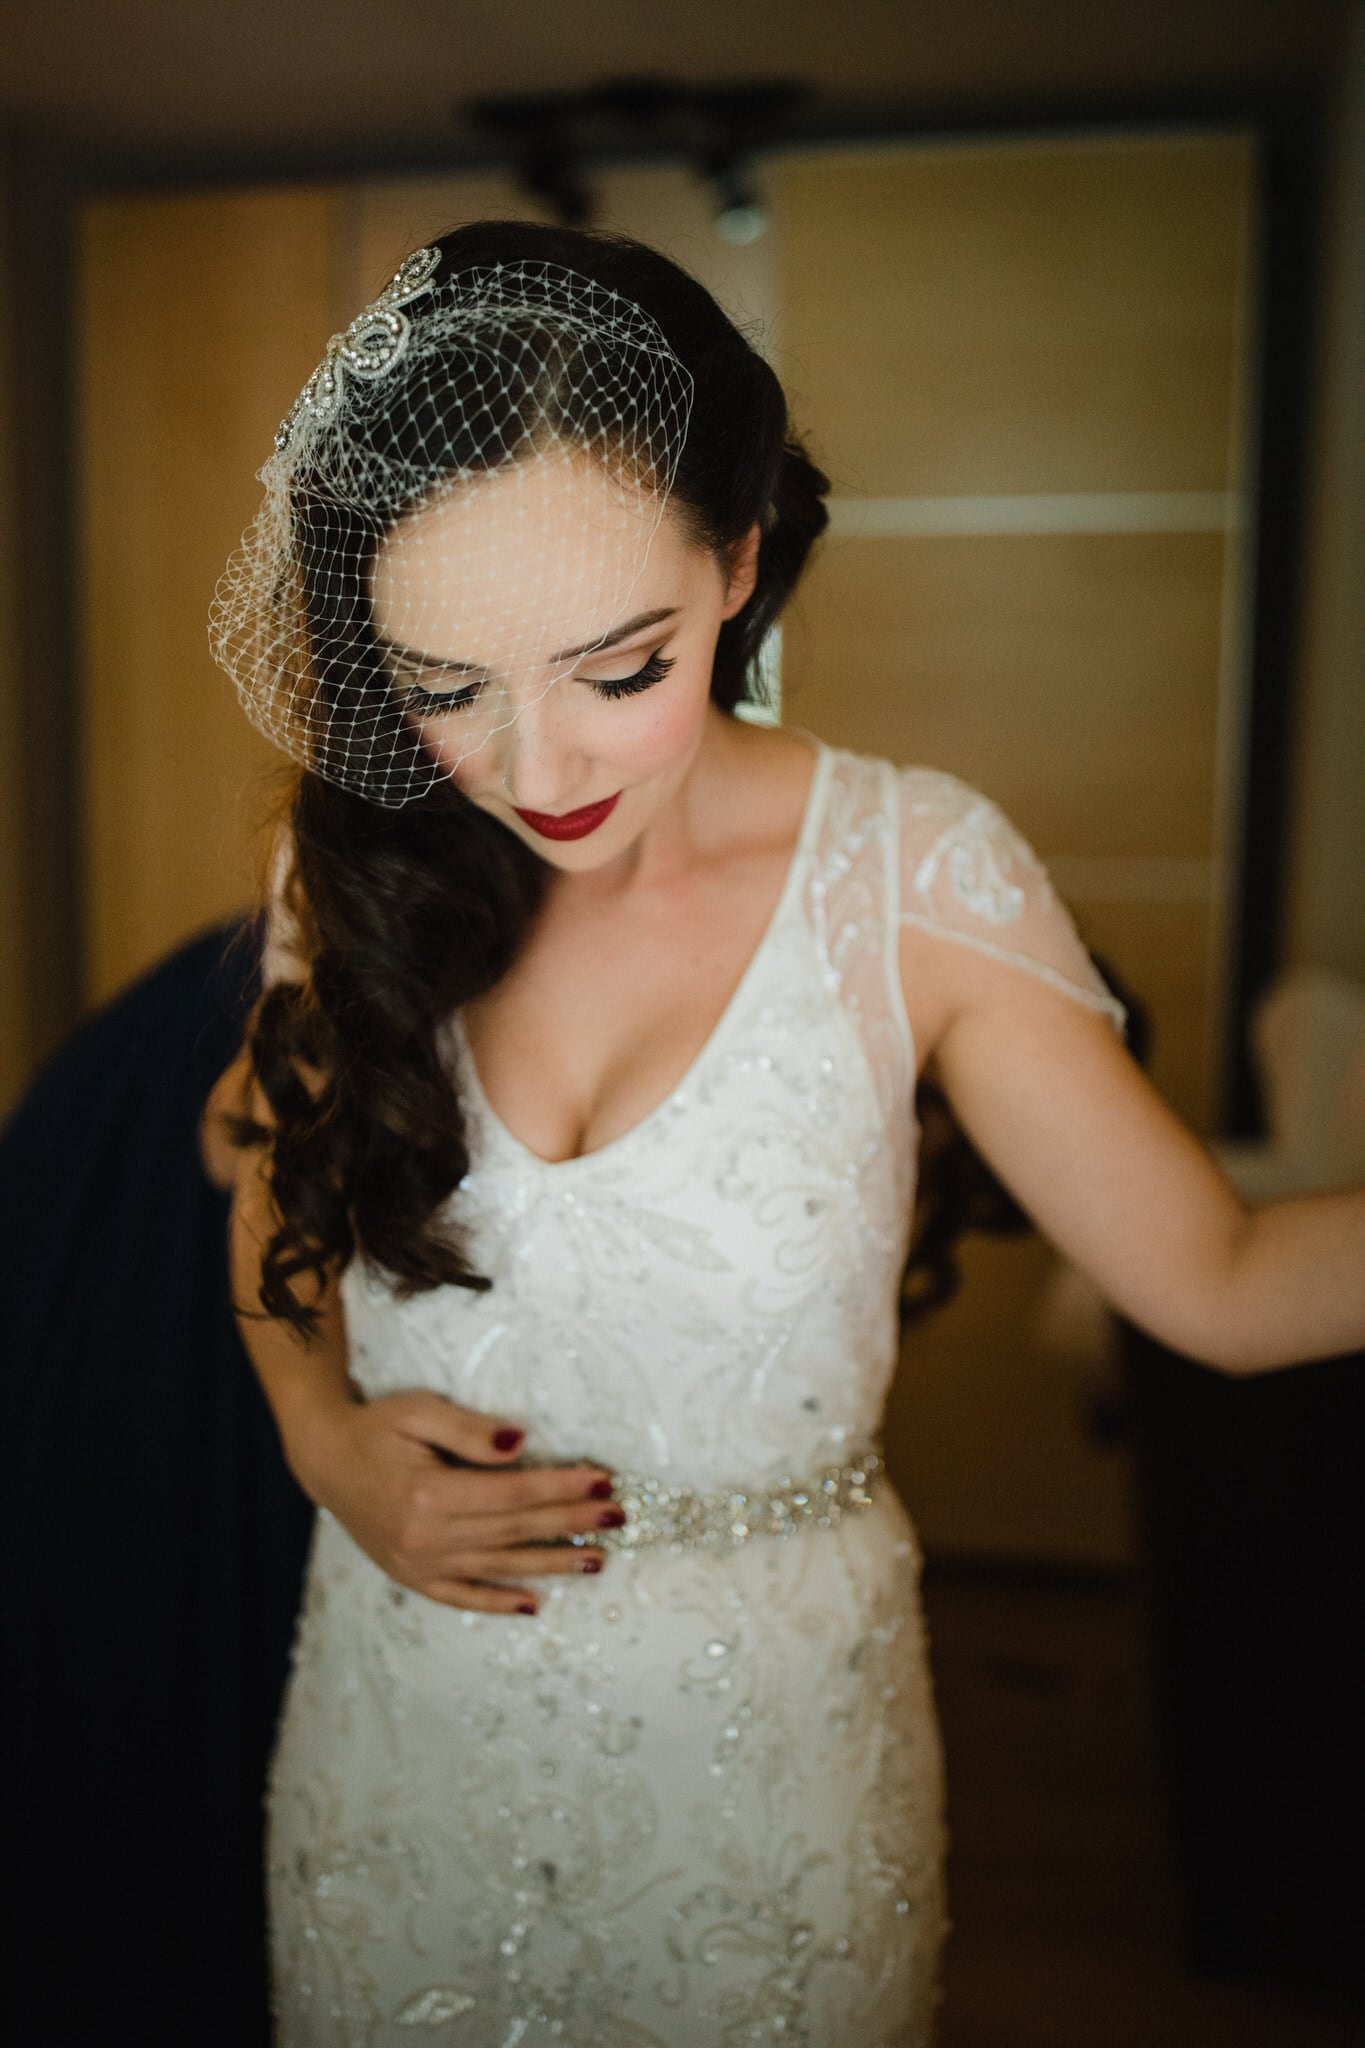 Bride getting ready with vintage veil. Destination wedding photographer Brent Calis.